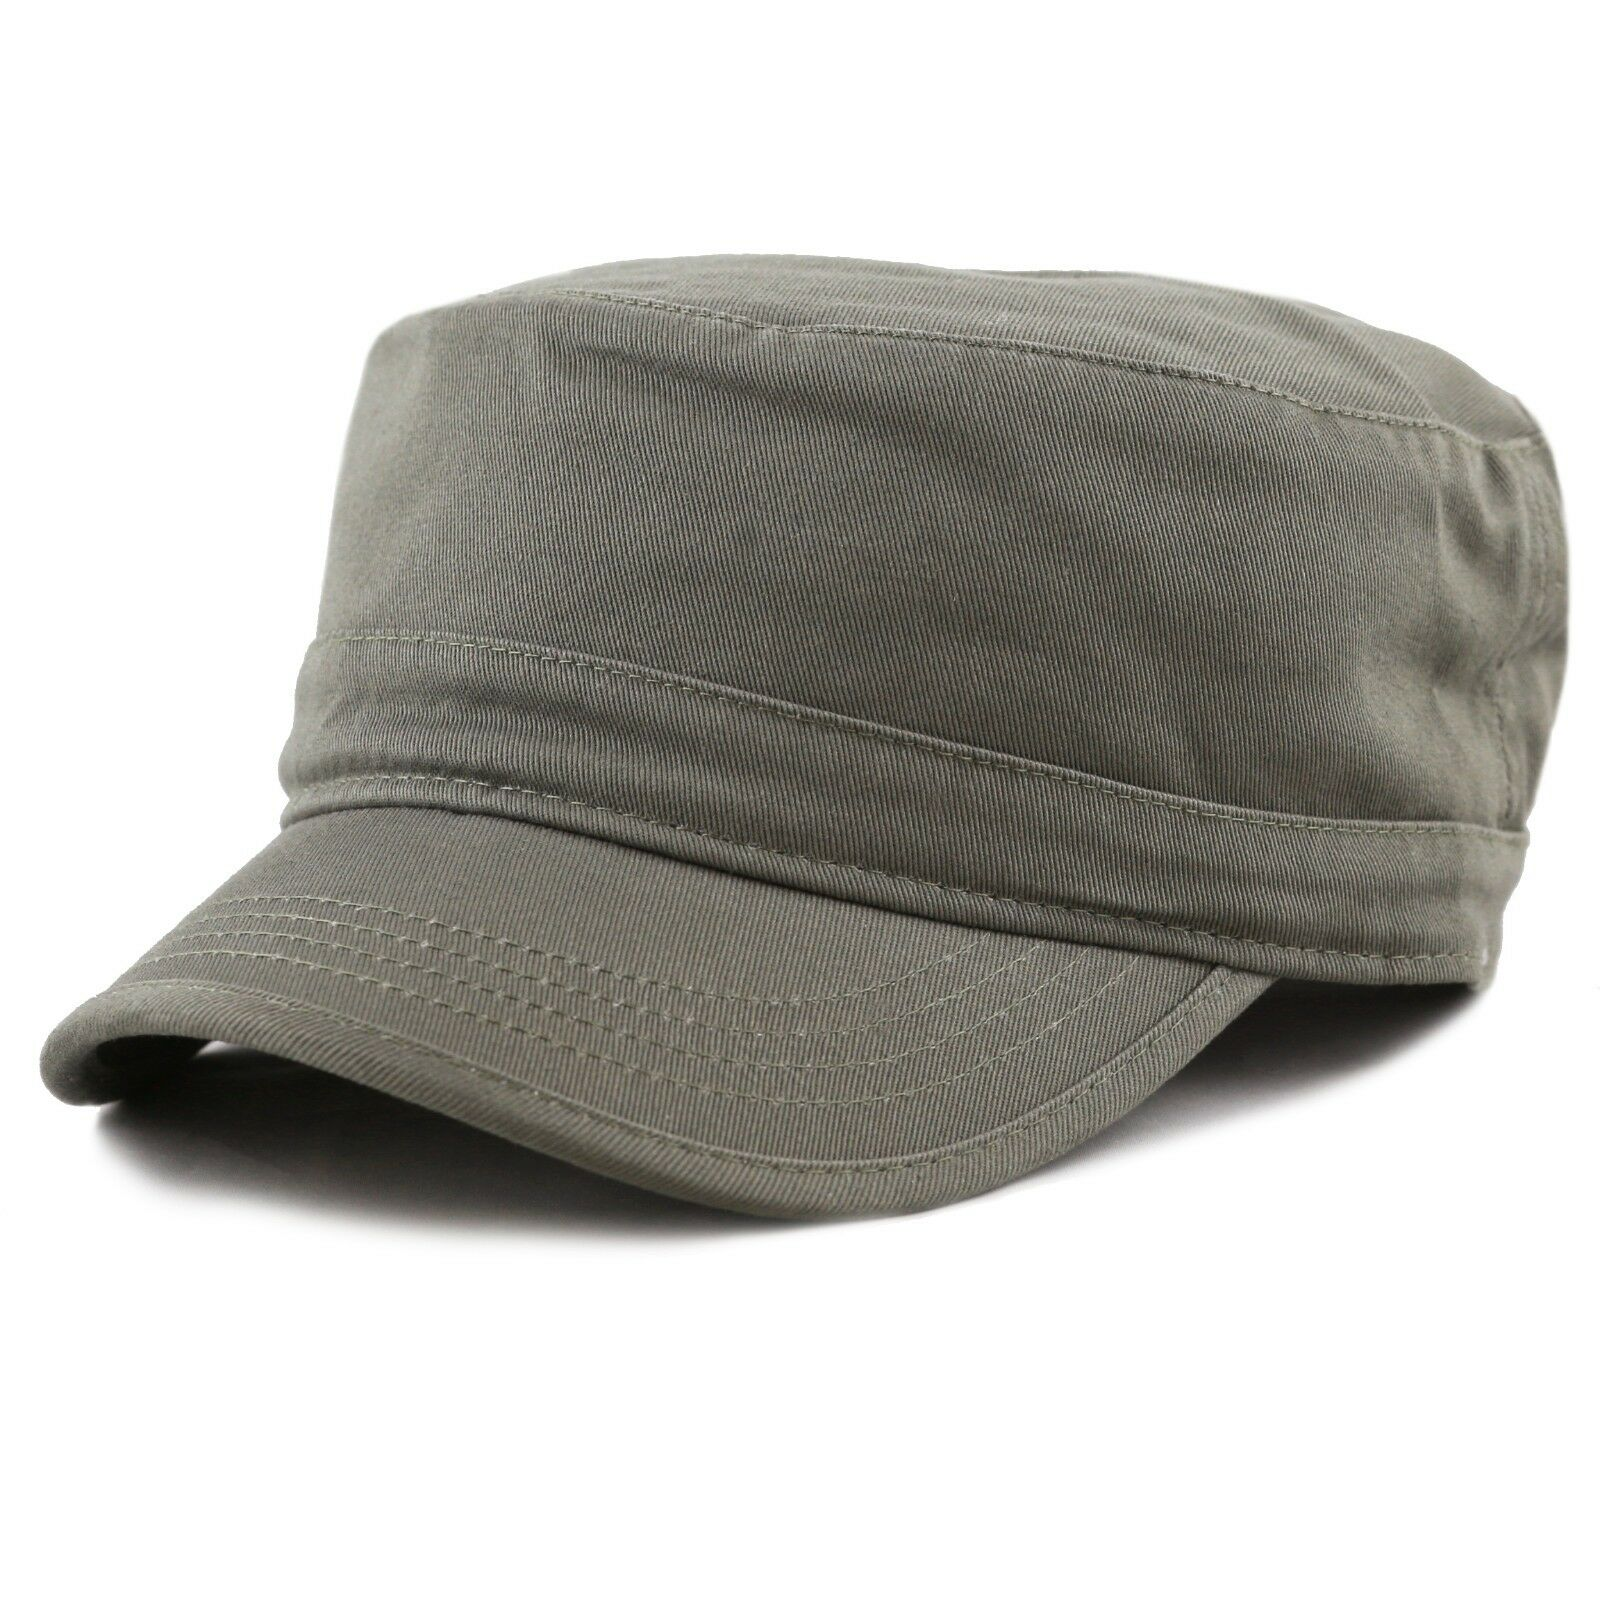 d5667605 Cadet Army Washed Cotton Basic Cap Military Style Hat 60012 | eBay